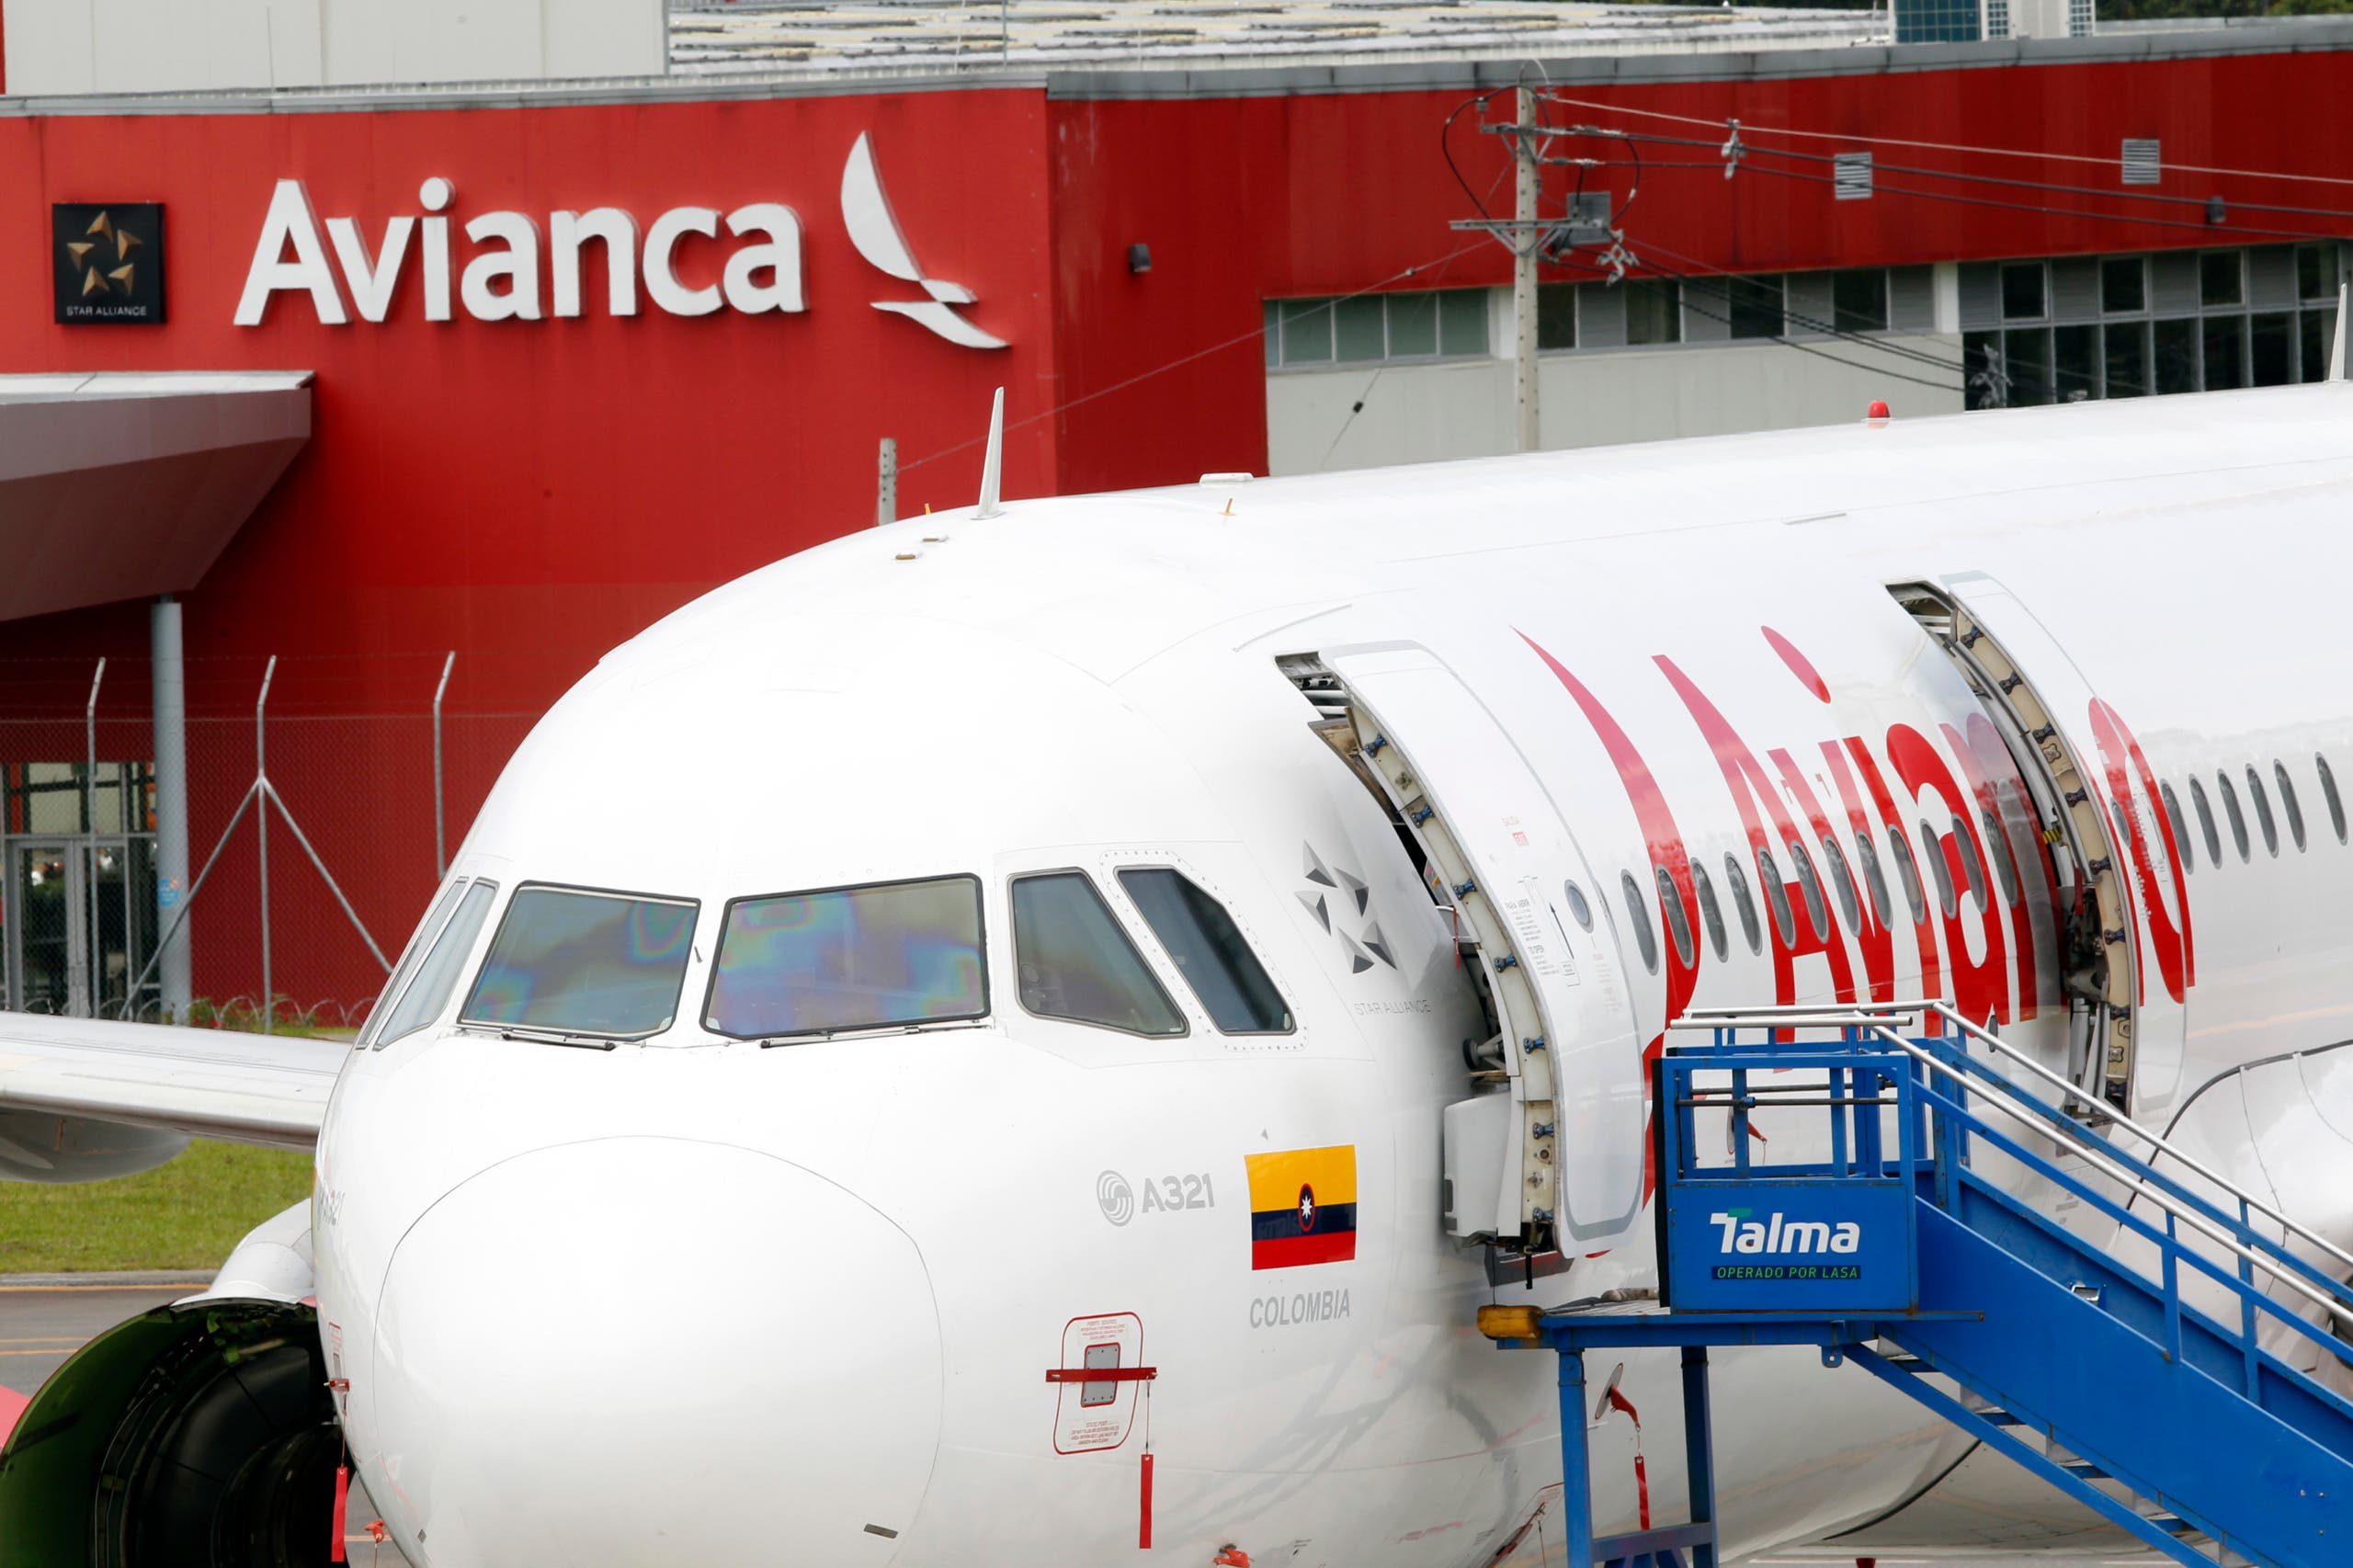 Could Avianca And Sky Airline Be Planning A Merger?